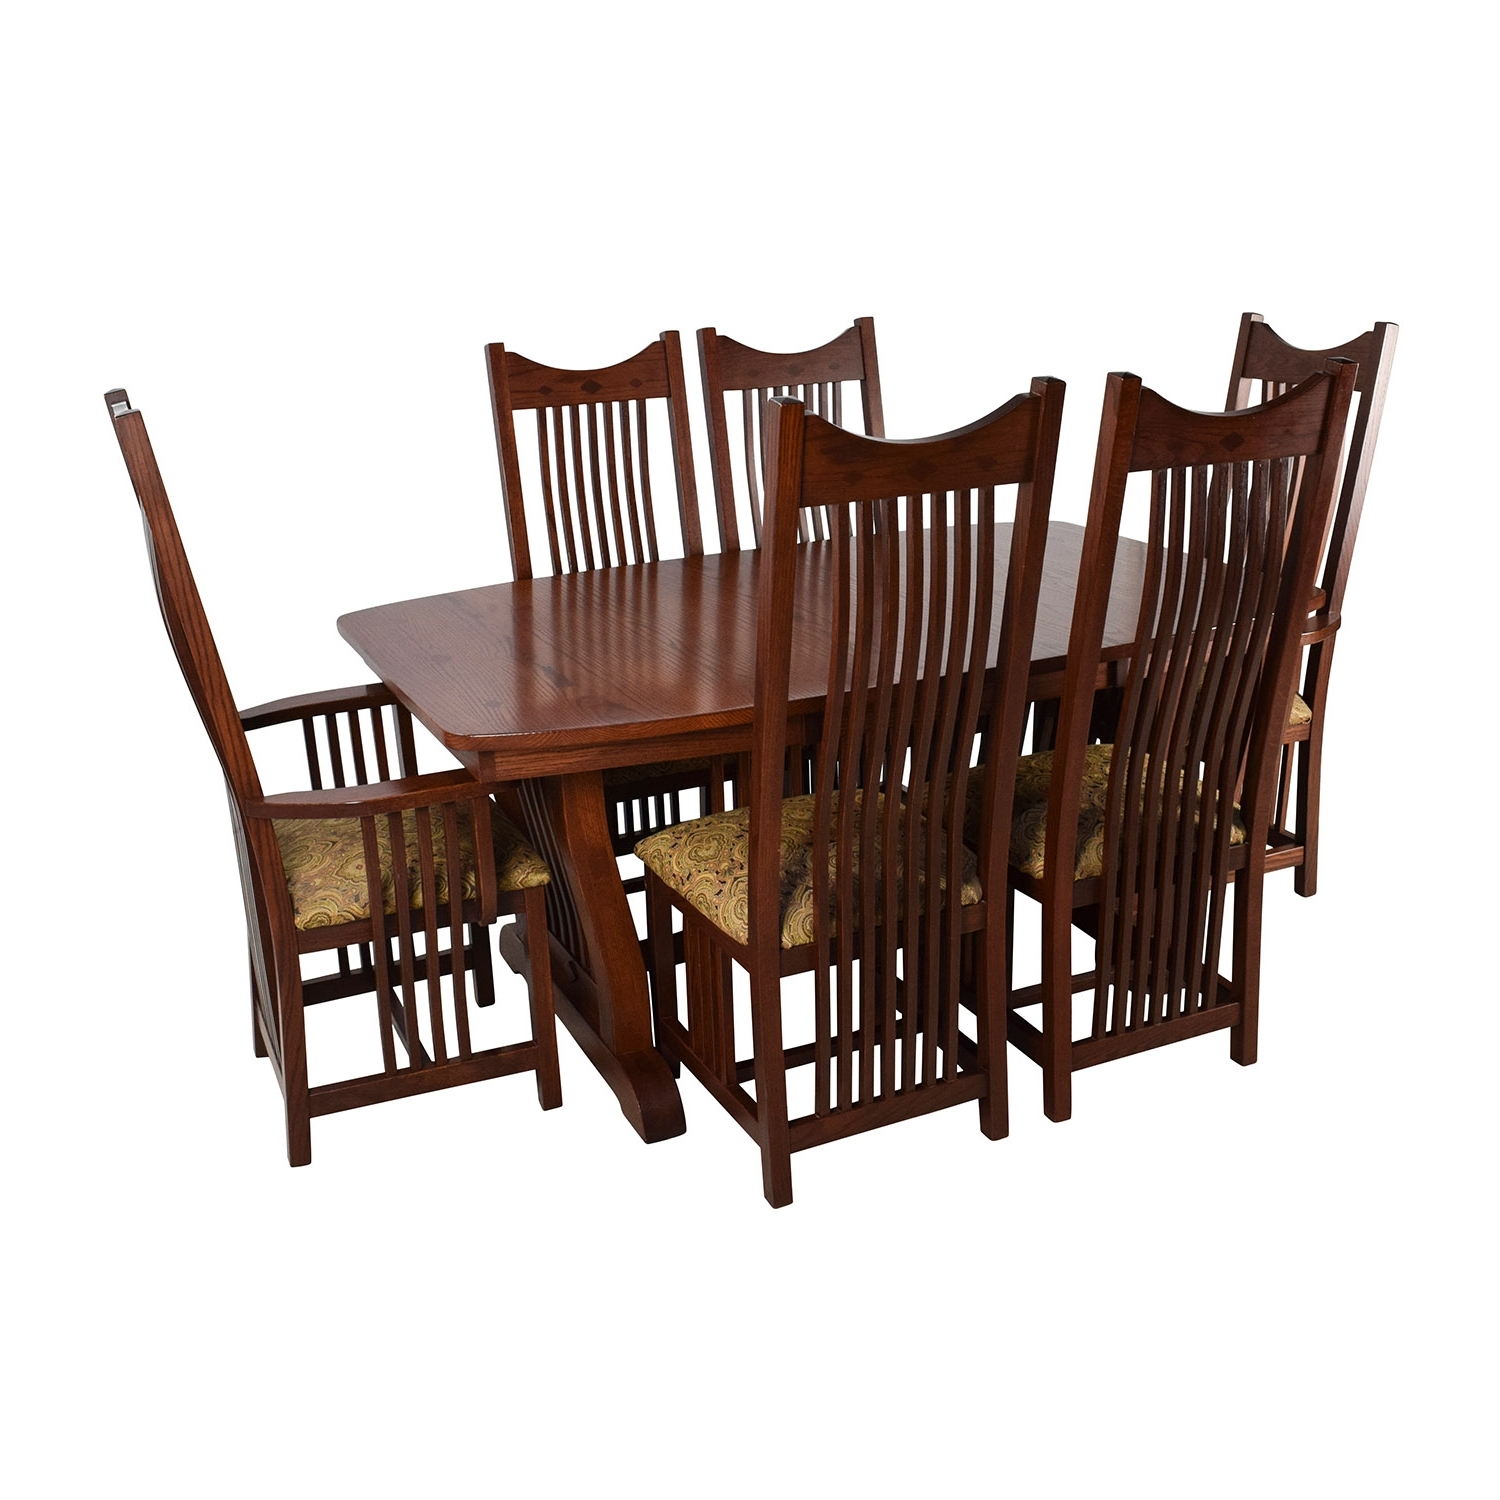 [%82% Off – Homestead Furniture Homestead Furniture Classic Mission With Best And Newest Second Hand Oak Dining Chairs Second Hand Oak Dining Chairs Throughout Famous 82% Off – Homestead Furniture Homestead Furniture Classic Mission Trendy Second Hand Oak Dining Chairs Inside 82% Off – Homestead Furniture Homestead Furniture Classic Mission Favorite 82% Off – Homestead Furniture Homestead Furniture Classic Mission Throughout Second Hand Oak Dining Chairs%] (View 23 of 25)